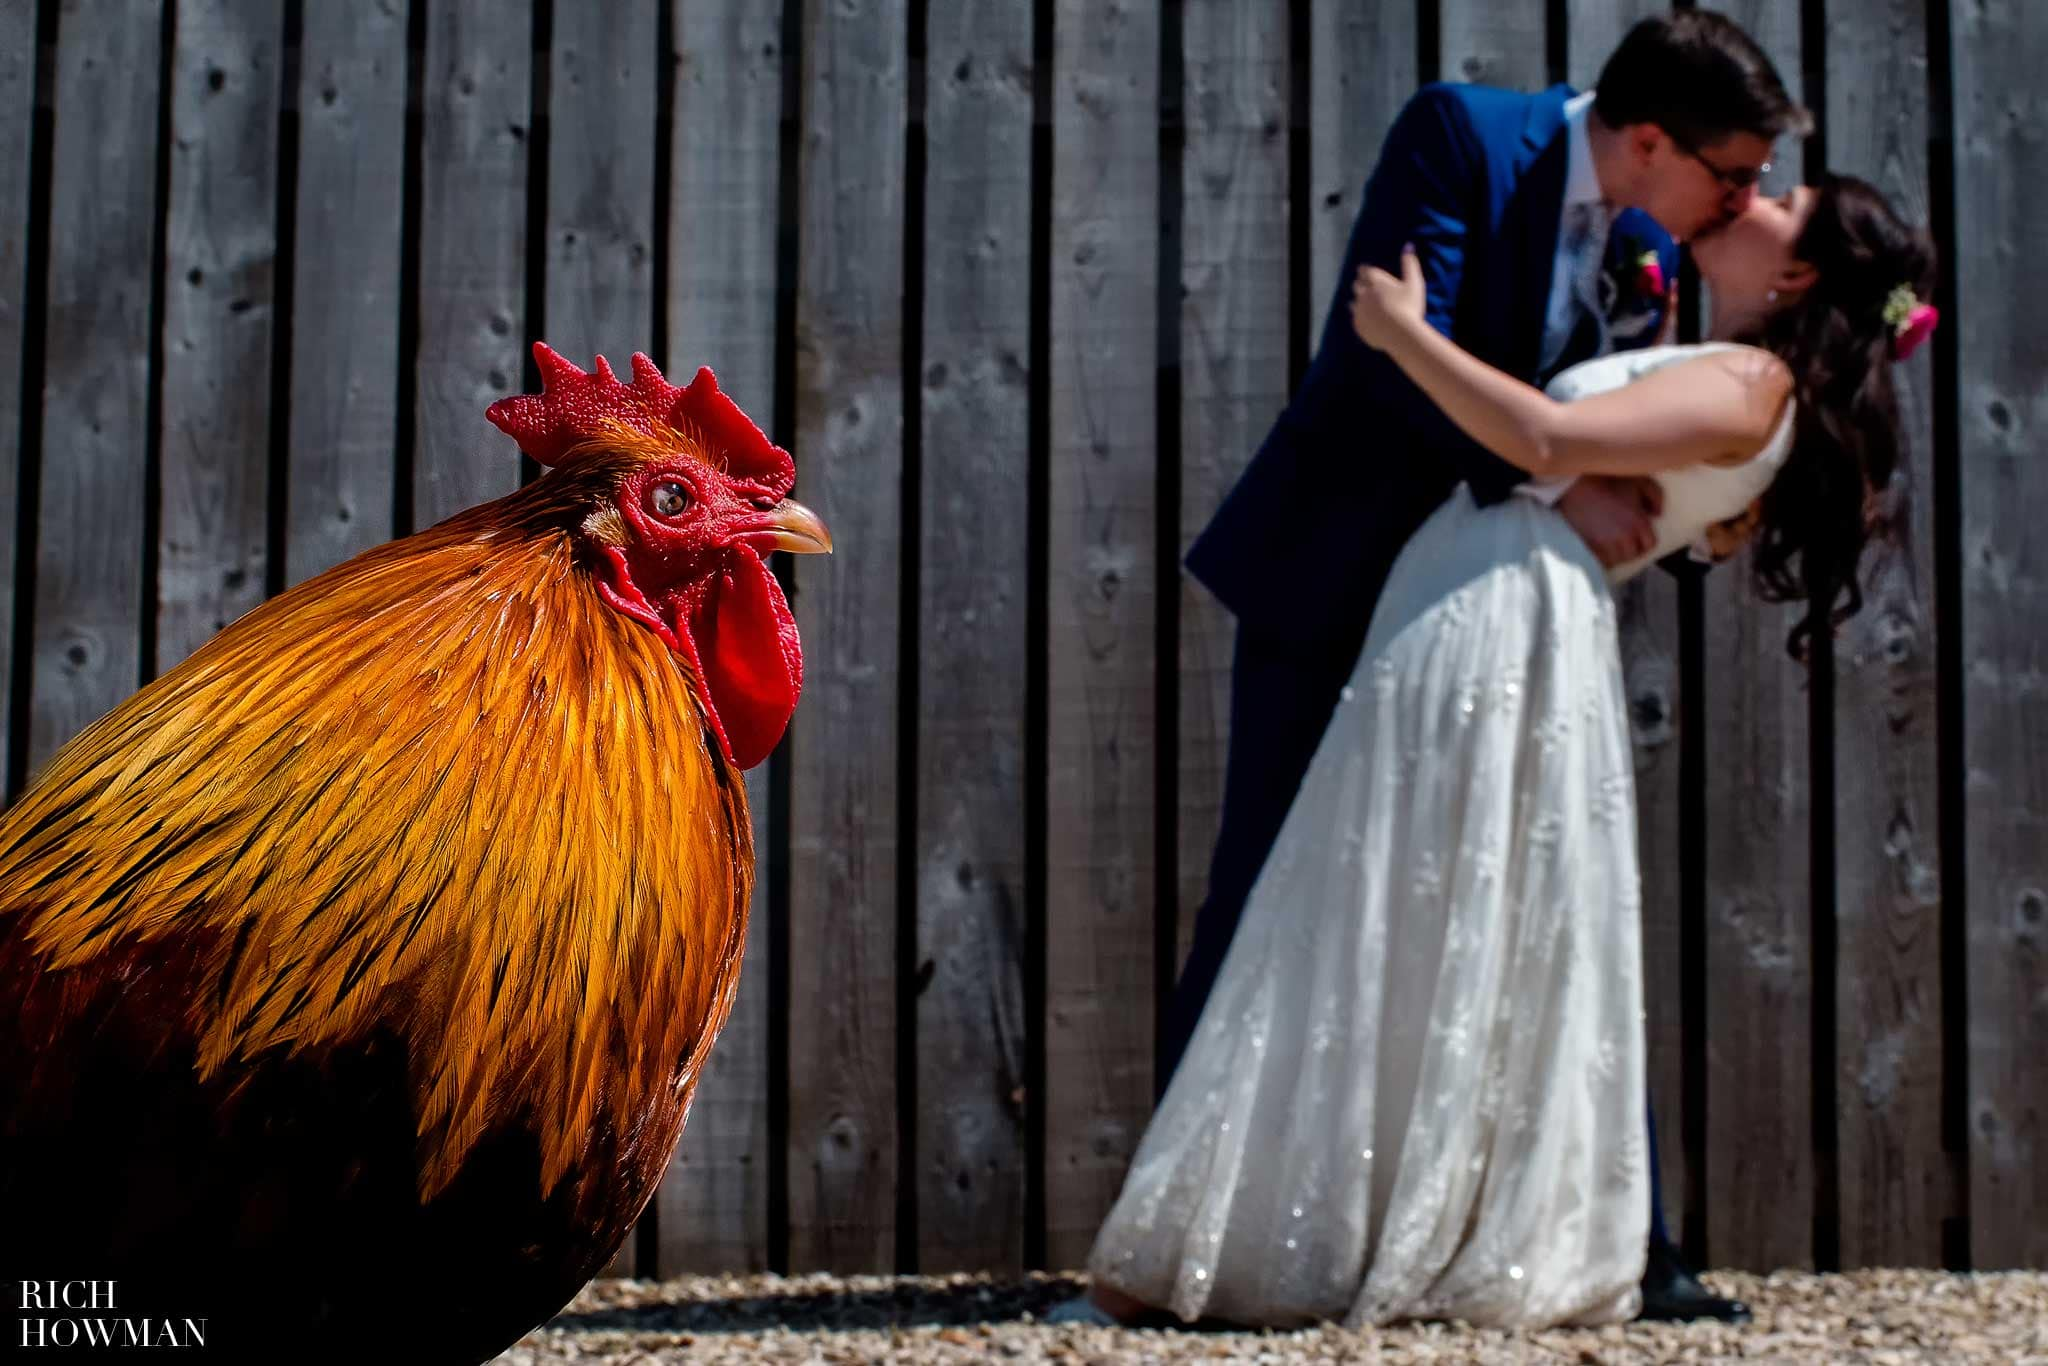 Farm Wedding photography in Gloucestershire. A chicker is pictured with the bride and groom at their family farm wedding